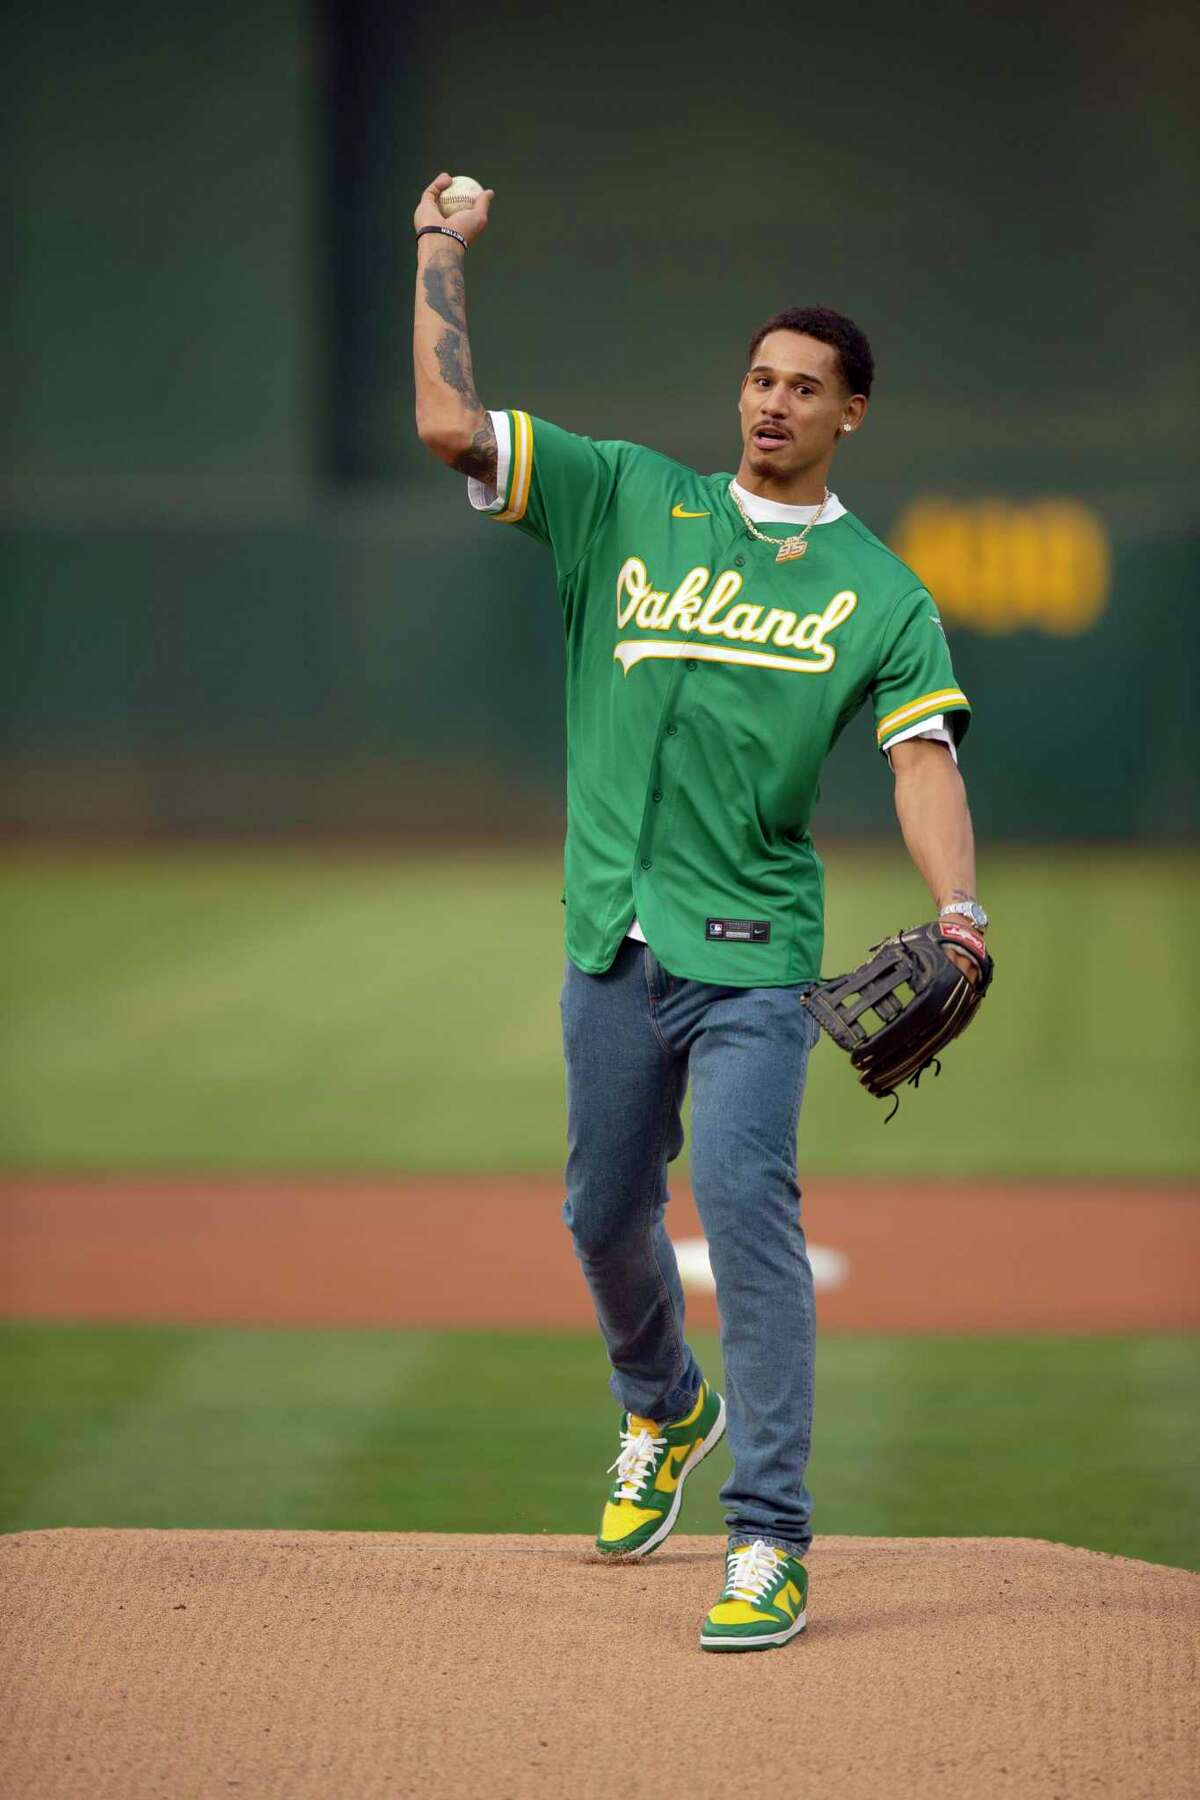 Golden State Warriors forward Juan Toscano Anderson throws the first pitch before a baseball game between the Oakland Athletics and the Texas Rangers, Friday, Aug. 6, 2021, in Oakland, Calif. (AP Photo/D. Ross Cameron)